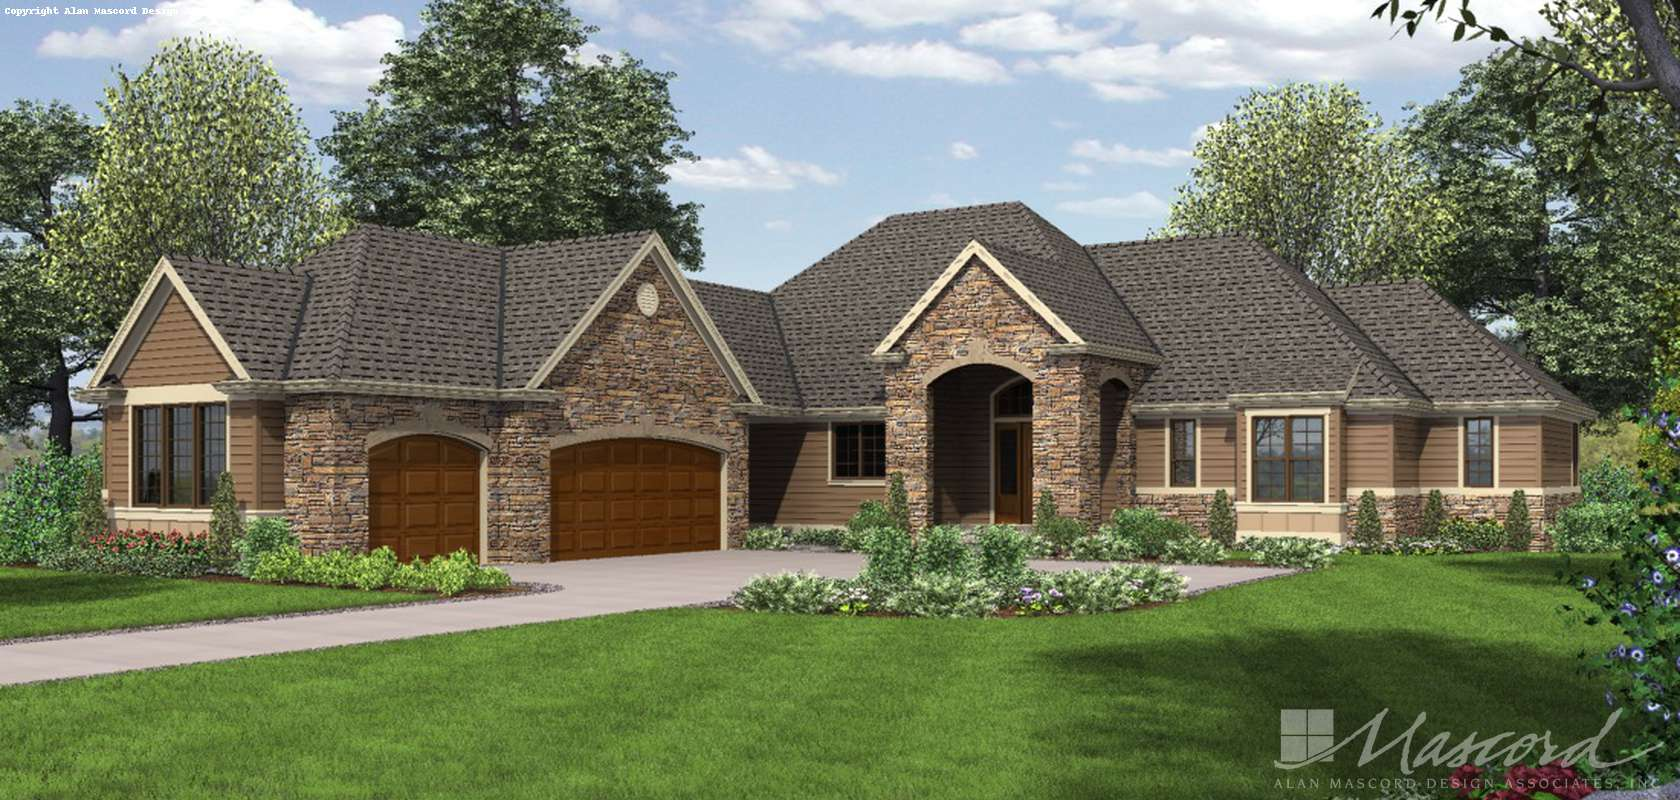 Mascord House Plan 1239: The Bridgeview